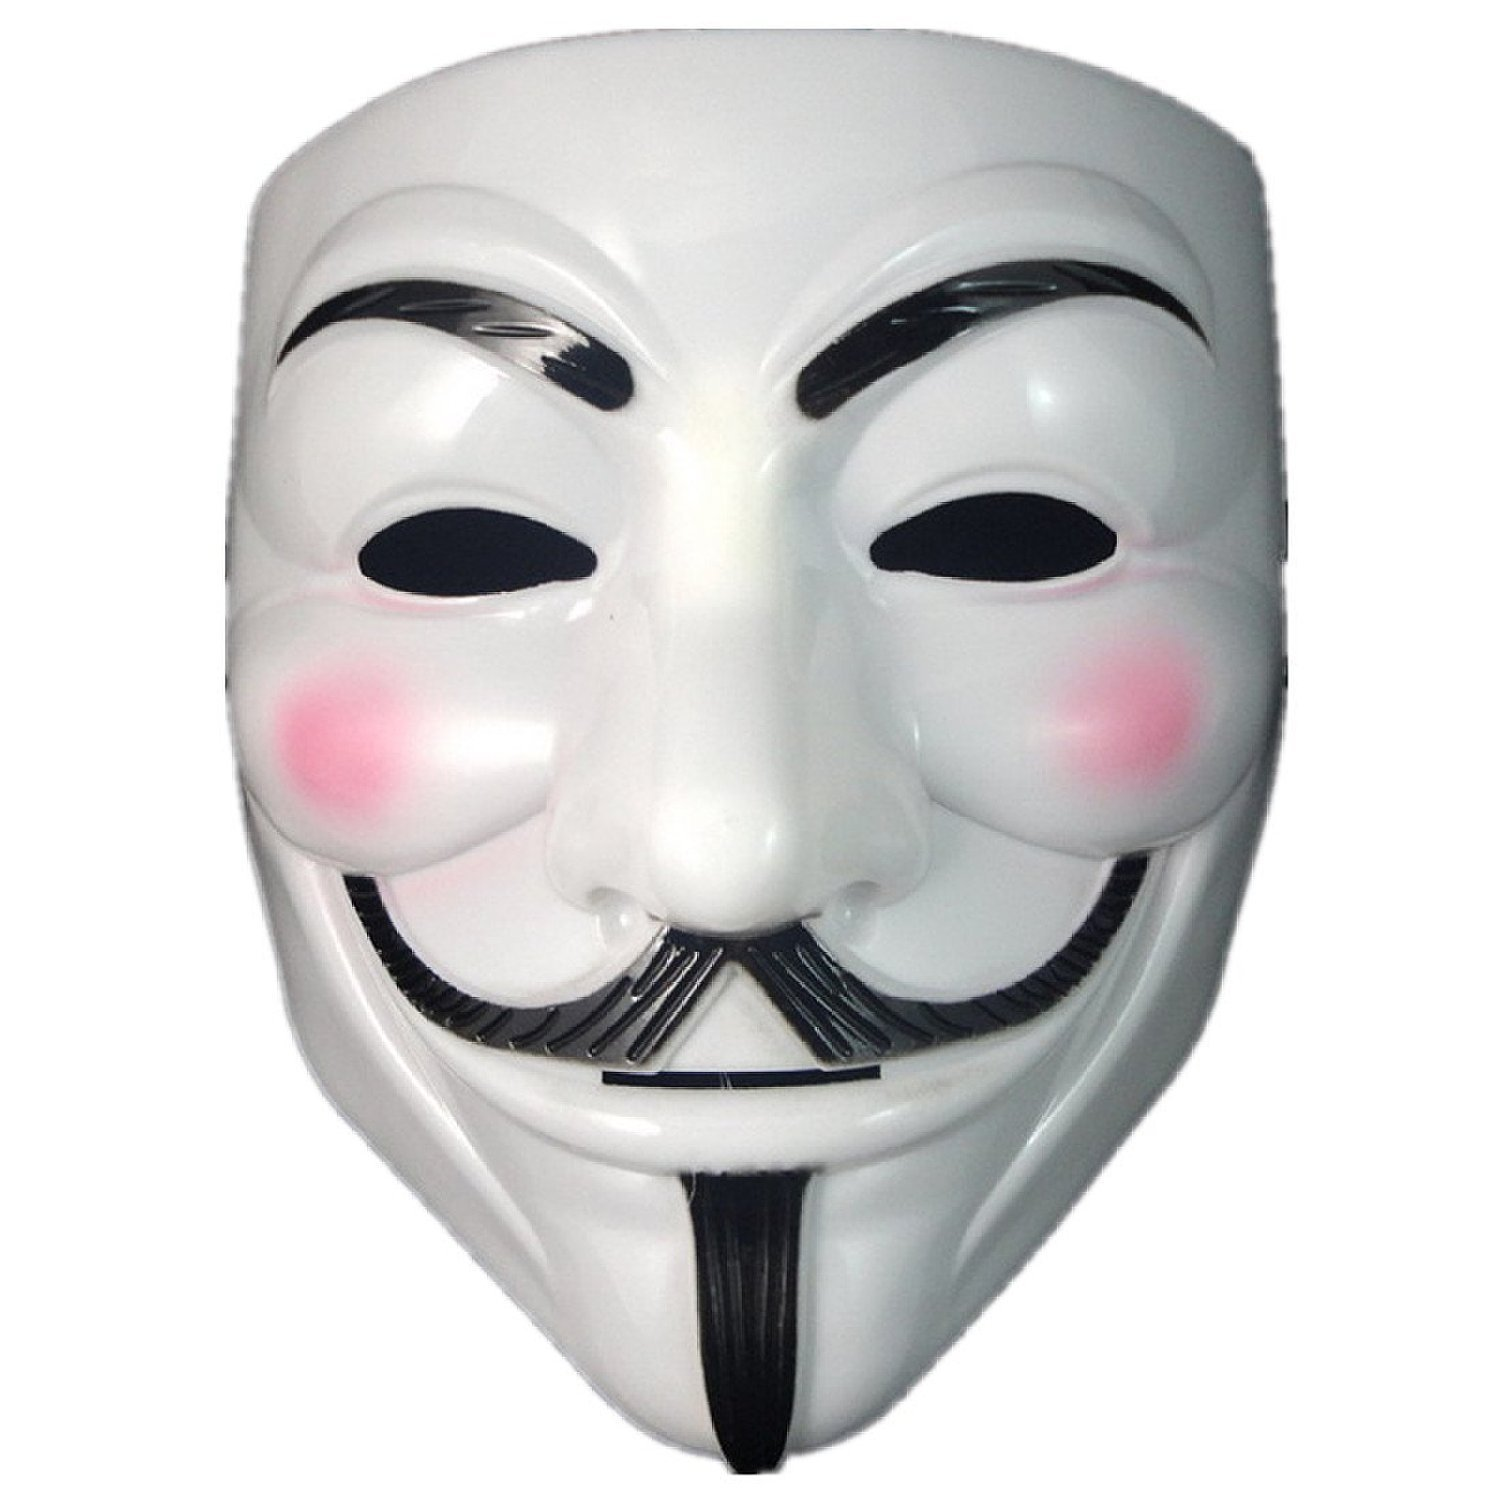 2 X ANONYMOUS HACKER V FOR VENDETTA GUY FAWKES FANCY DRESS HALLOWEEN FACE MASK